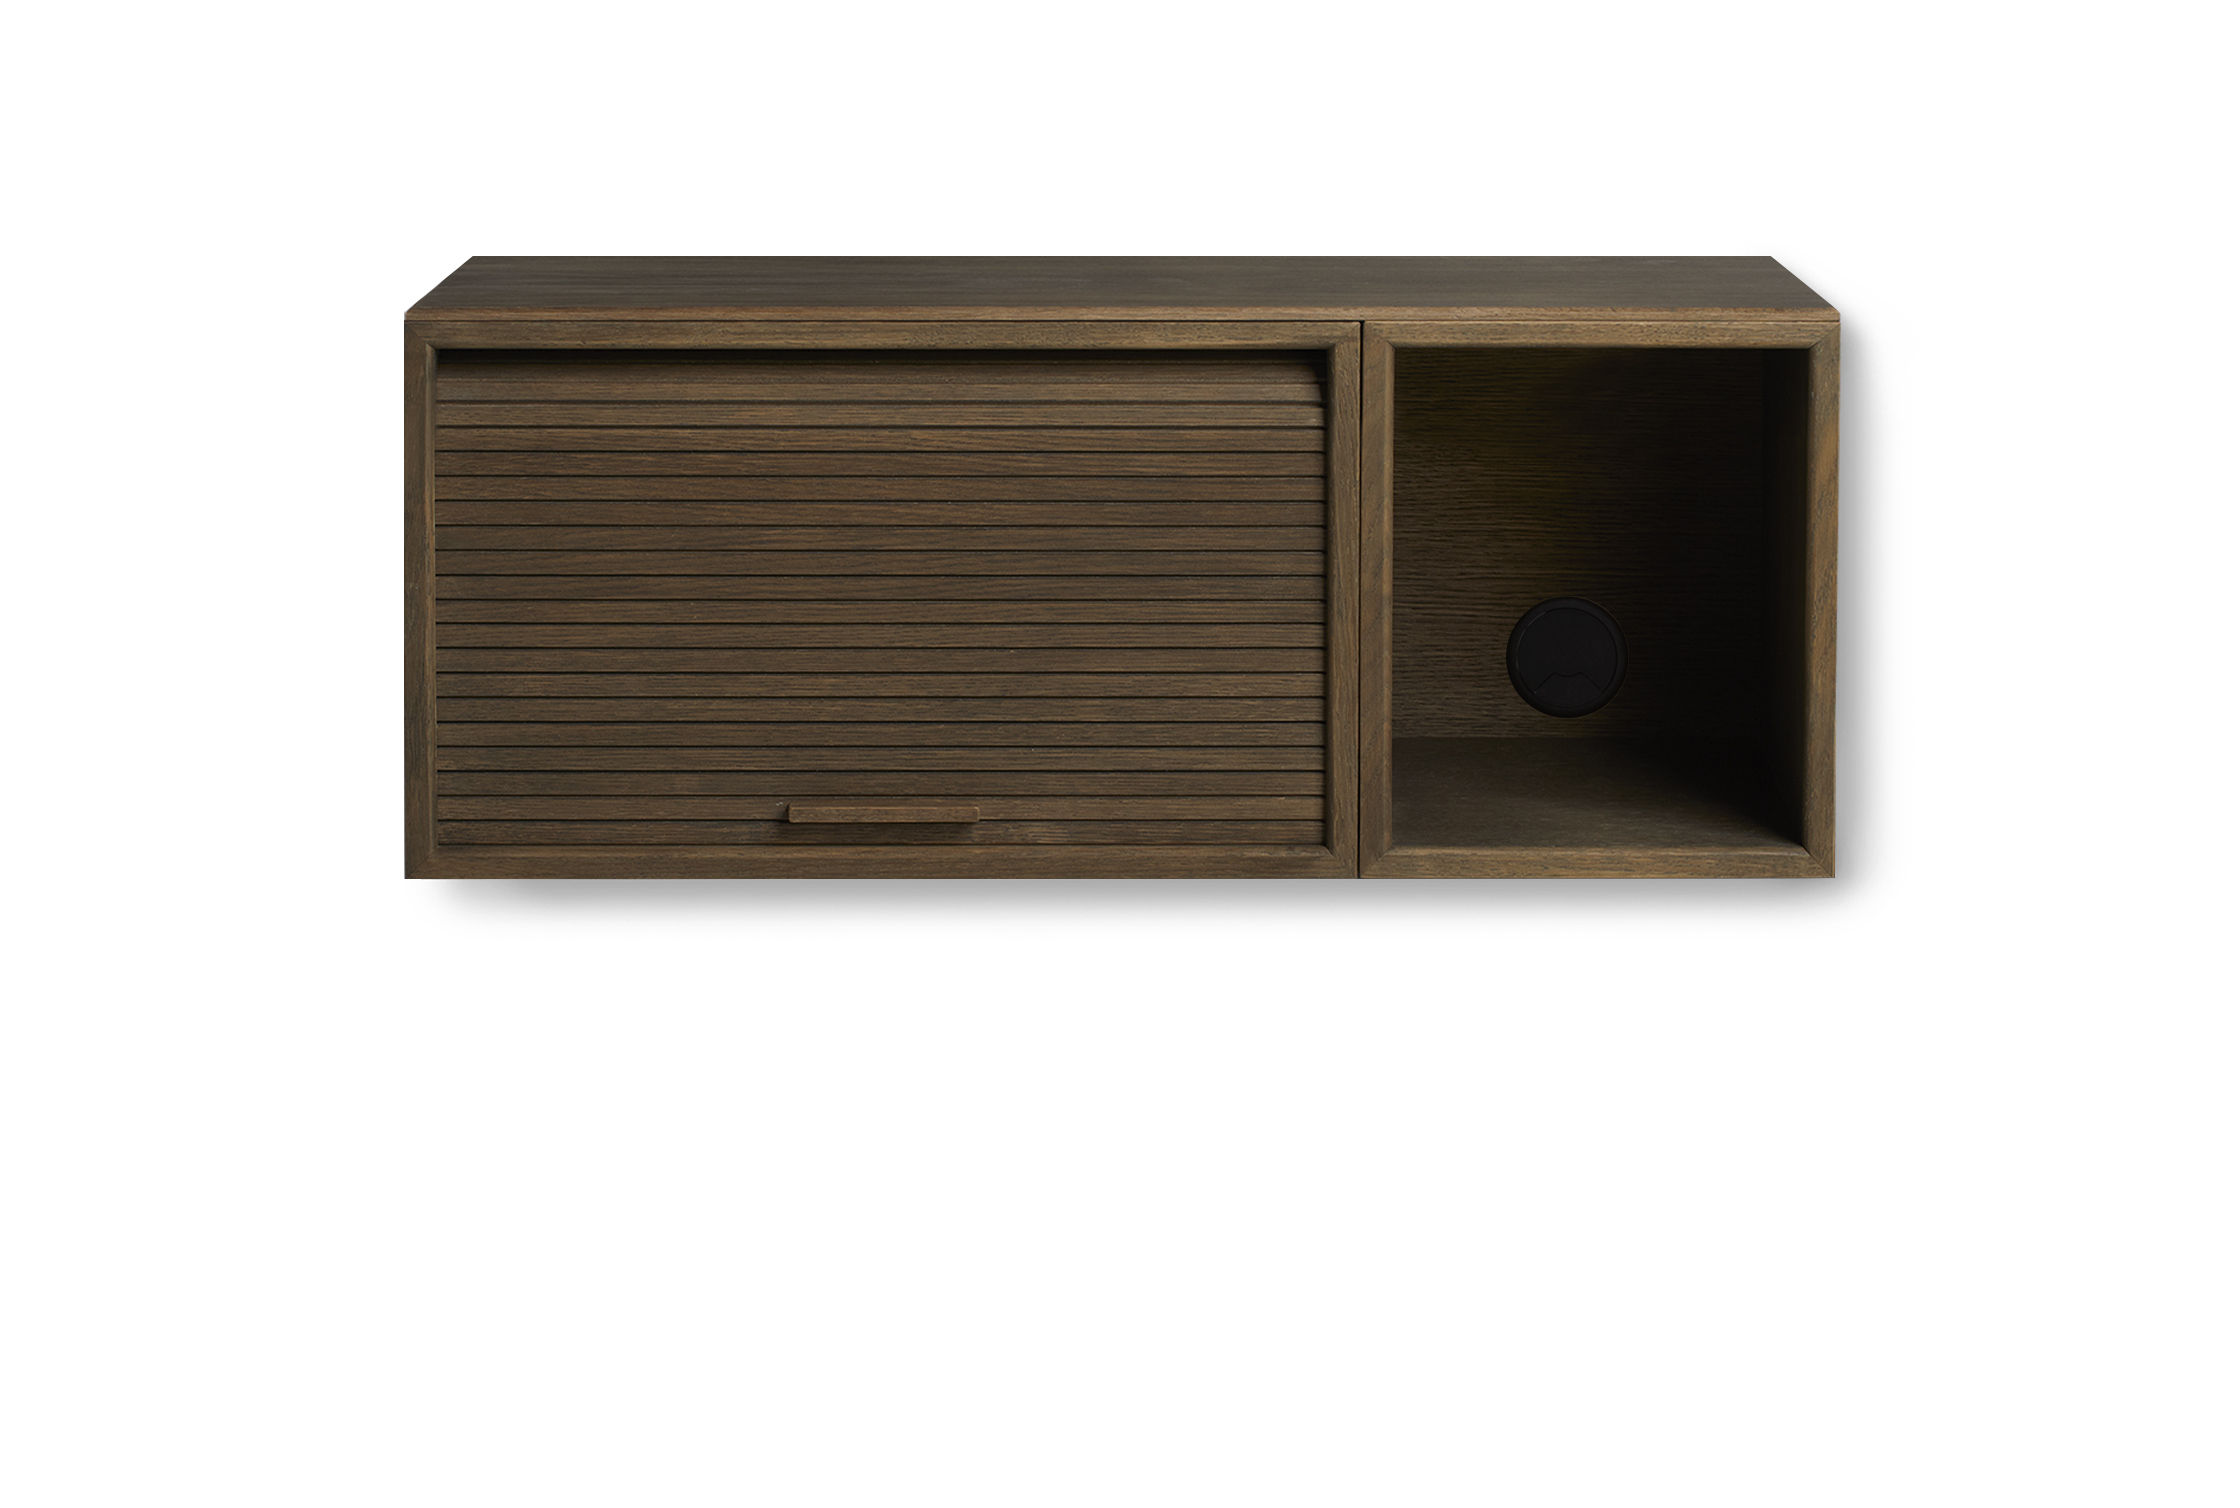 Furniture - Shelves & Storage Furniture - Hifive Slim Wall storage - / TV table - L 75 x H 30 cm by Northern  - Smoked oak - Smoked oak plywood